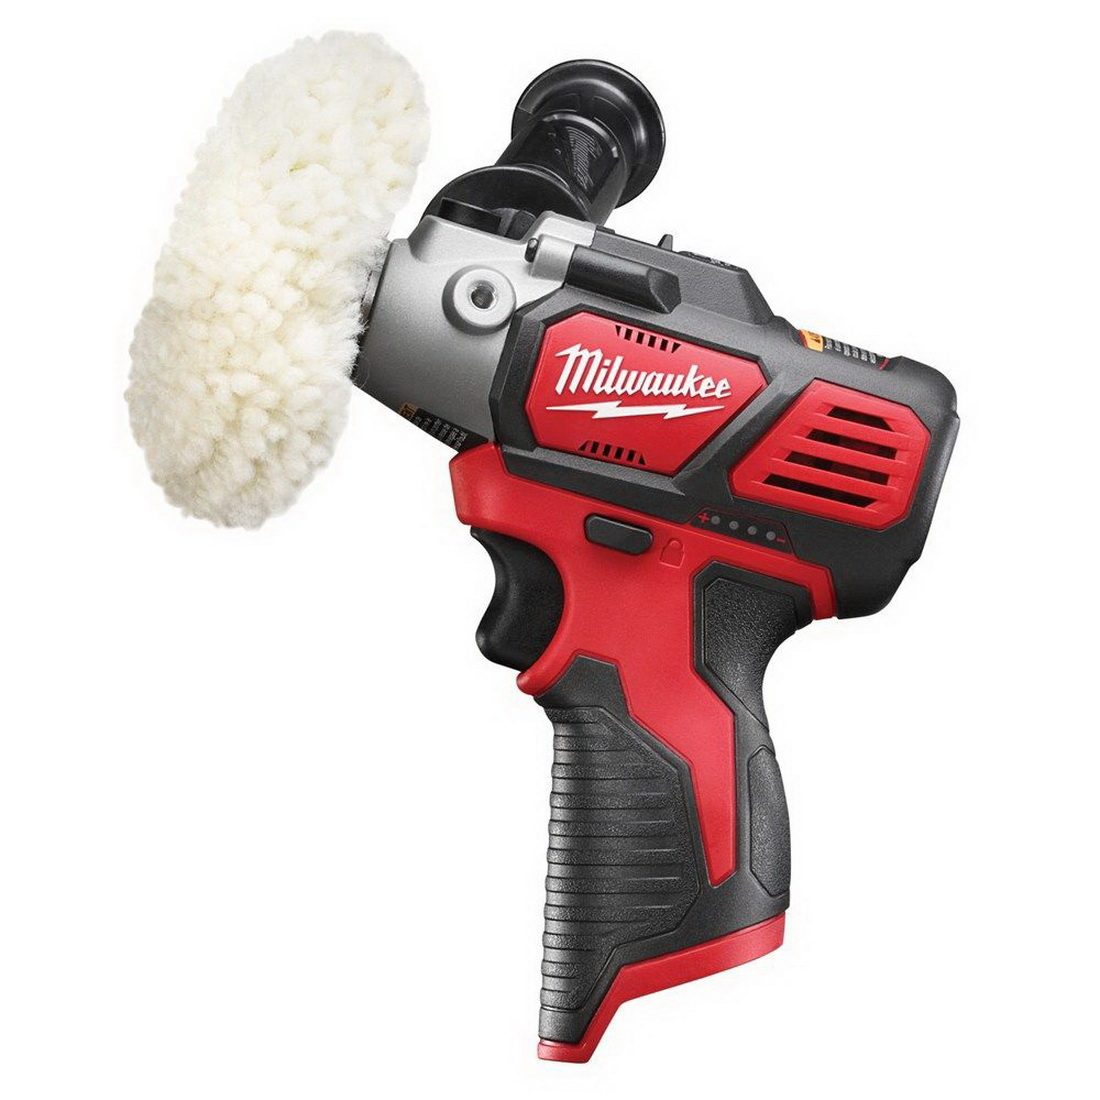 M12 Cordless Spot Polisher and Detail Sander (Tool Only)